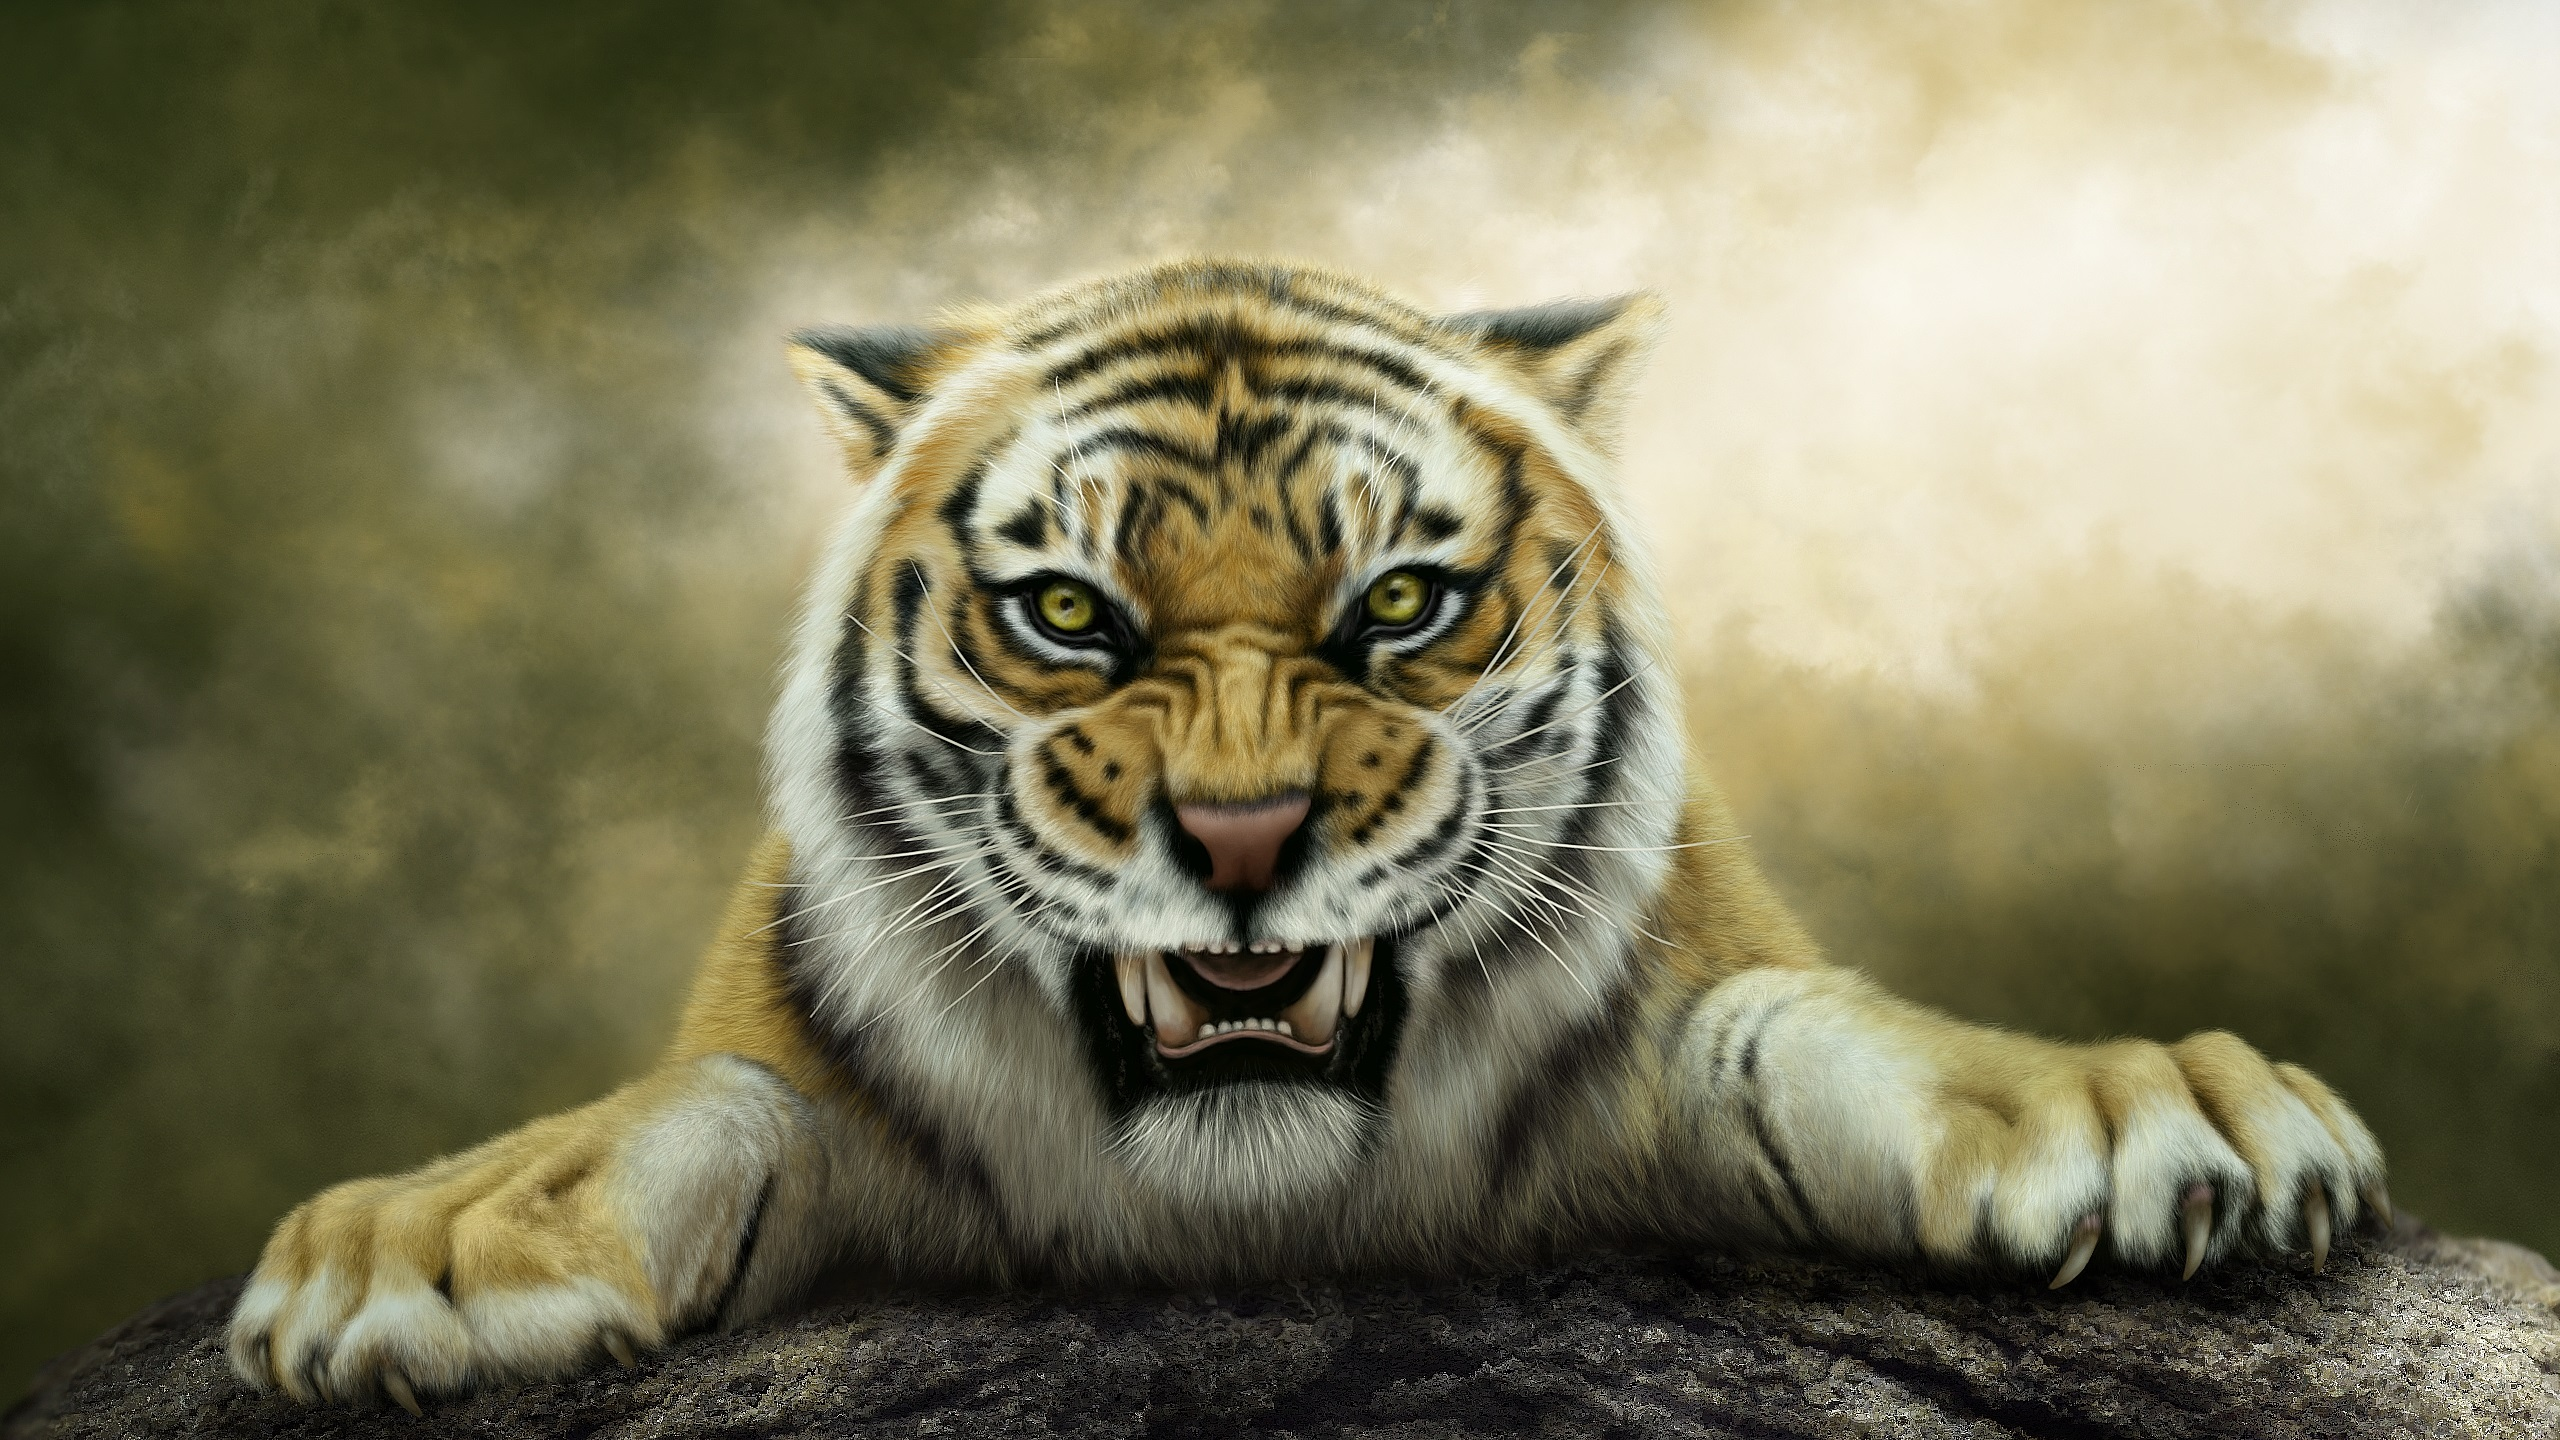 wallpaper forest king, tiger, face, big cat 2560x1440 qhd picture, image